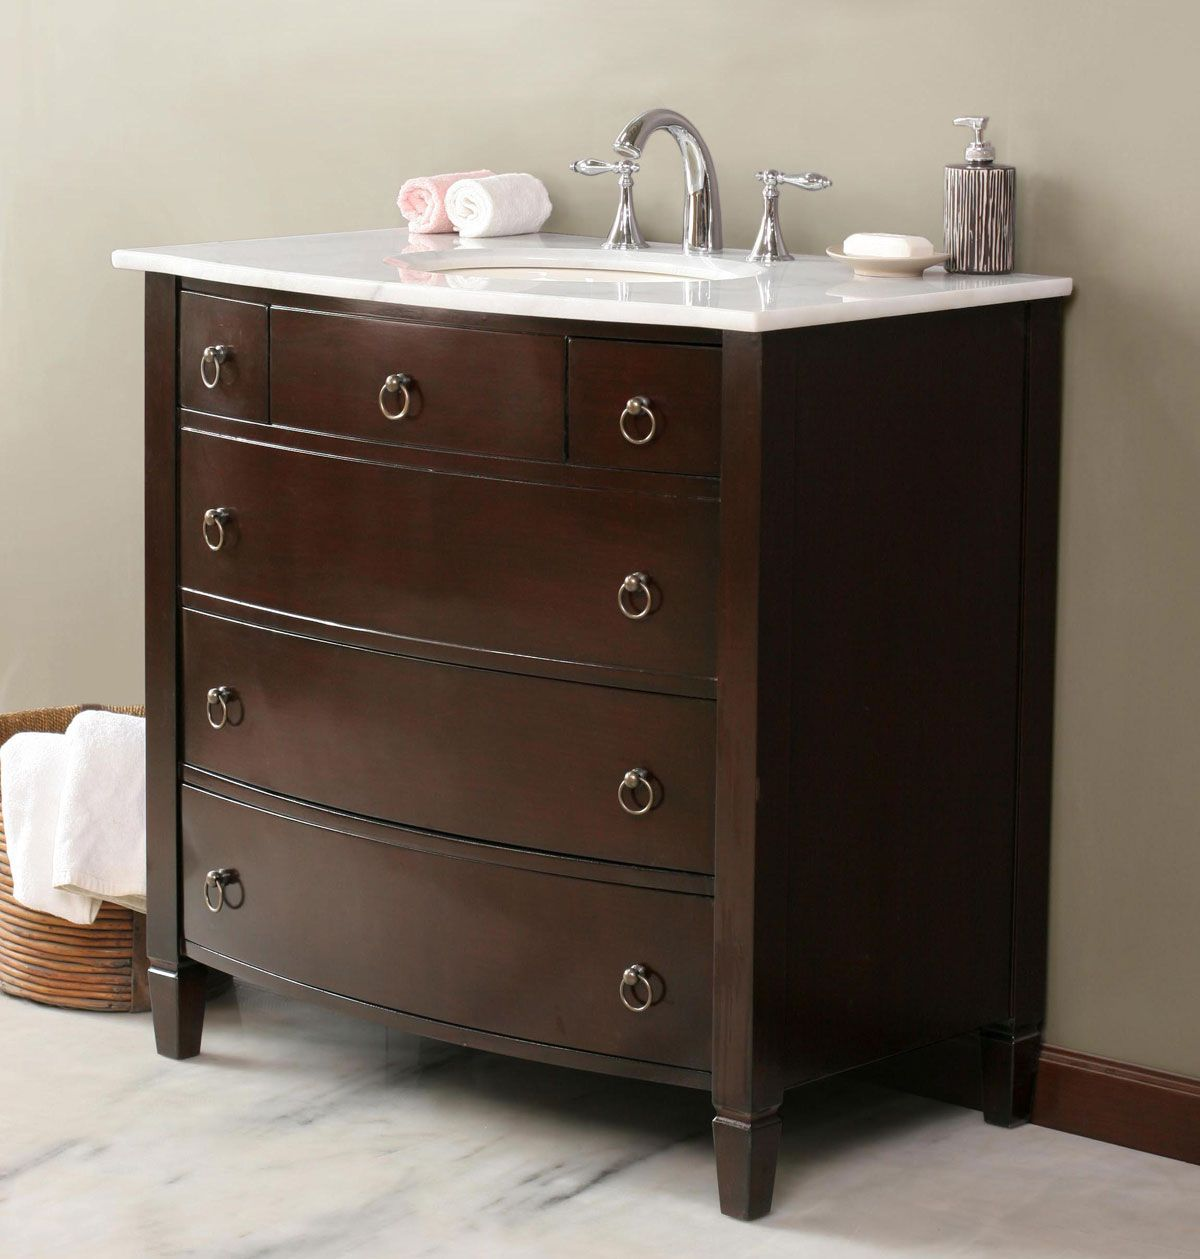 Small bathroom vanity the complement of small bathroom - Small bathroom cabinet with drawers ...